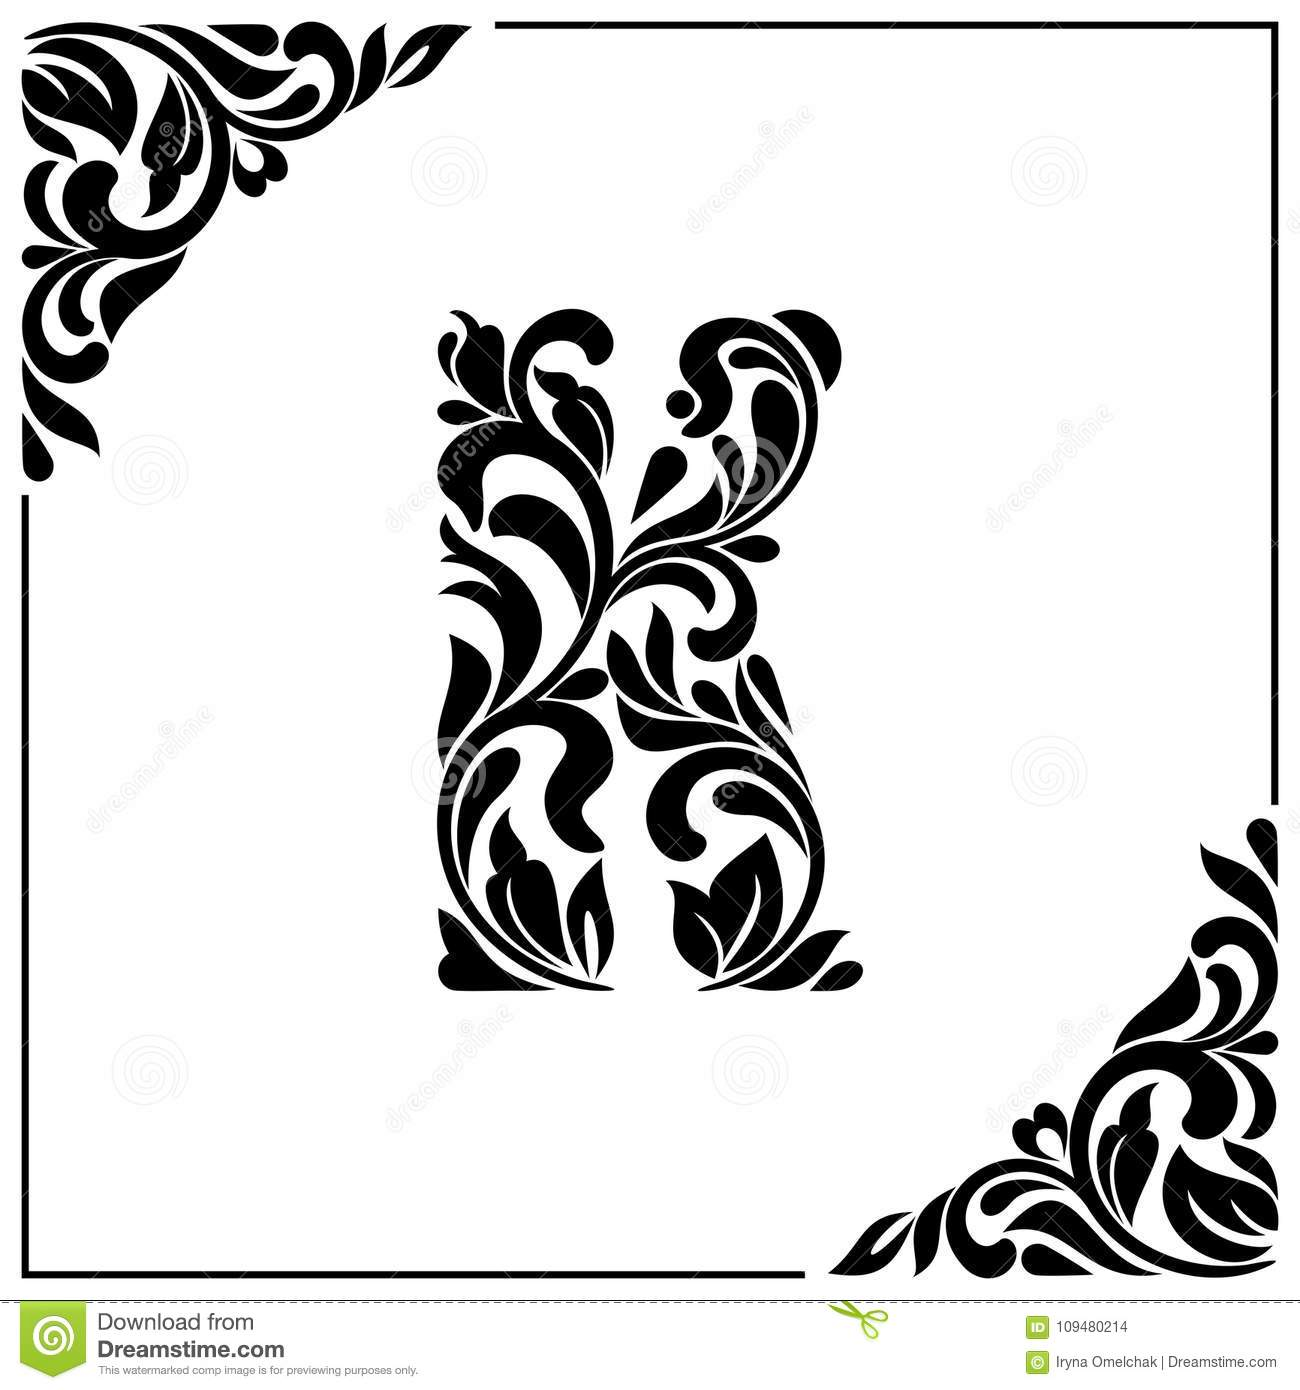 Letter K In Different Styles